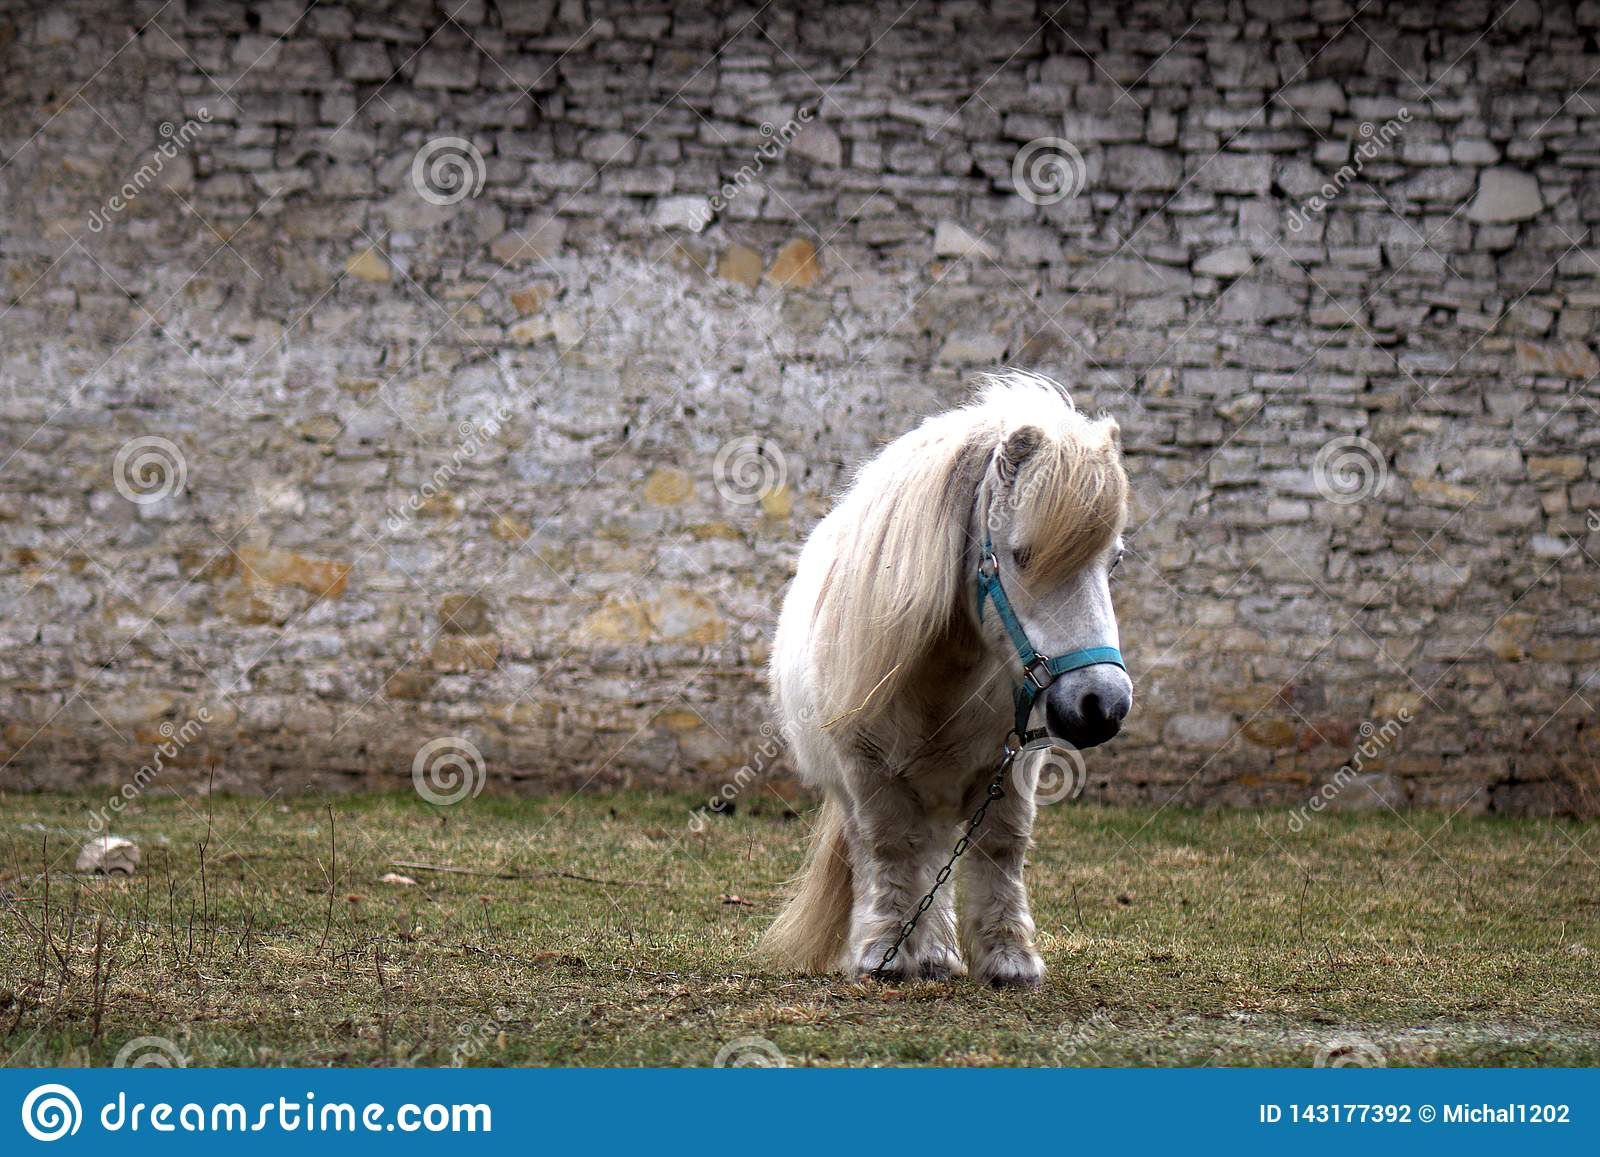 The old little pony rescued from the slaughterhouse end up in the peace of the end.